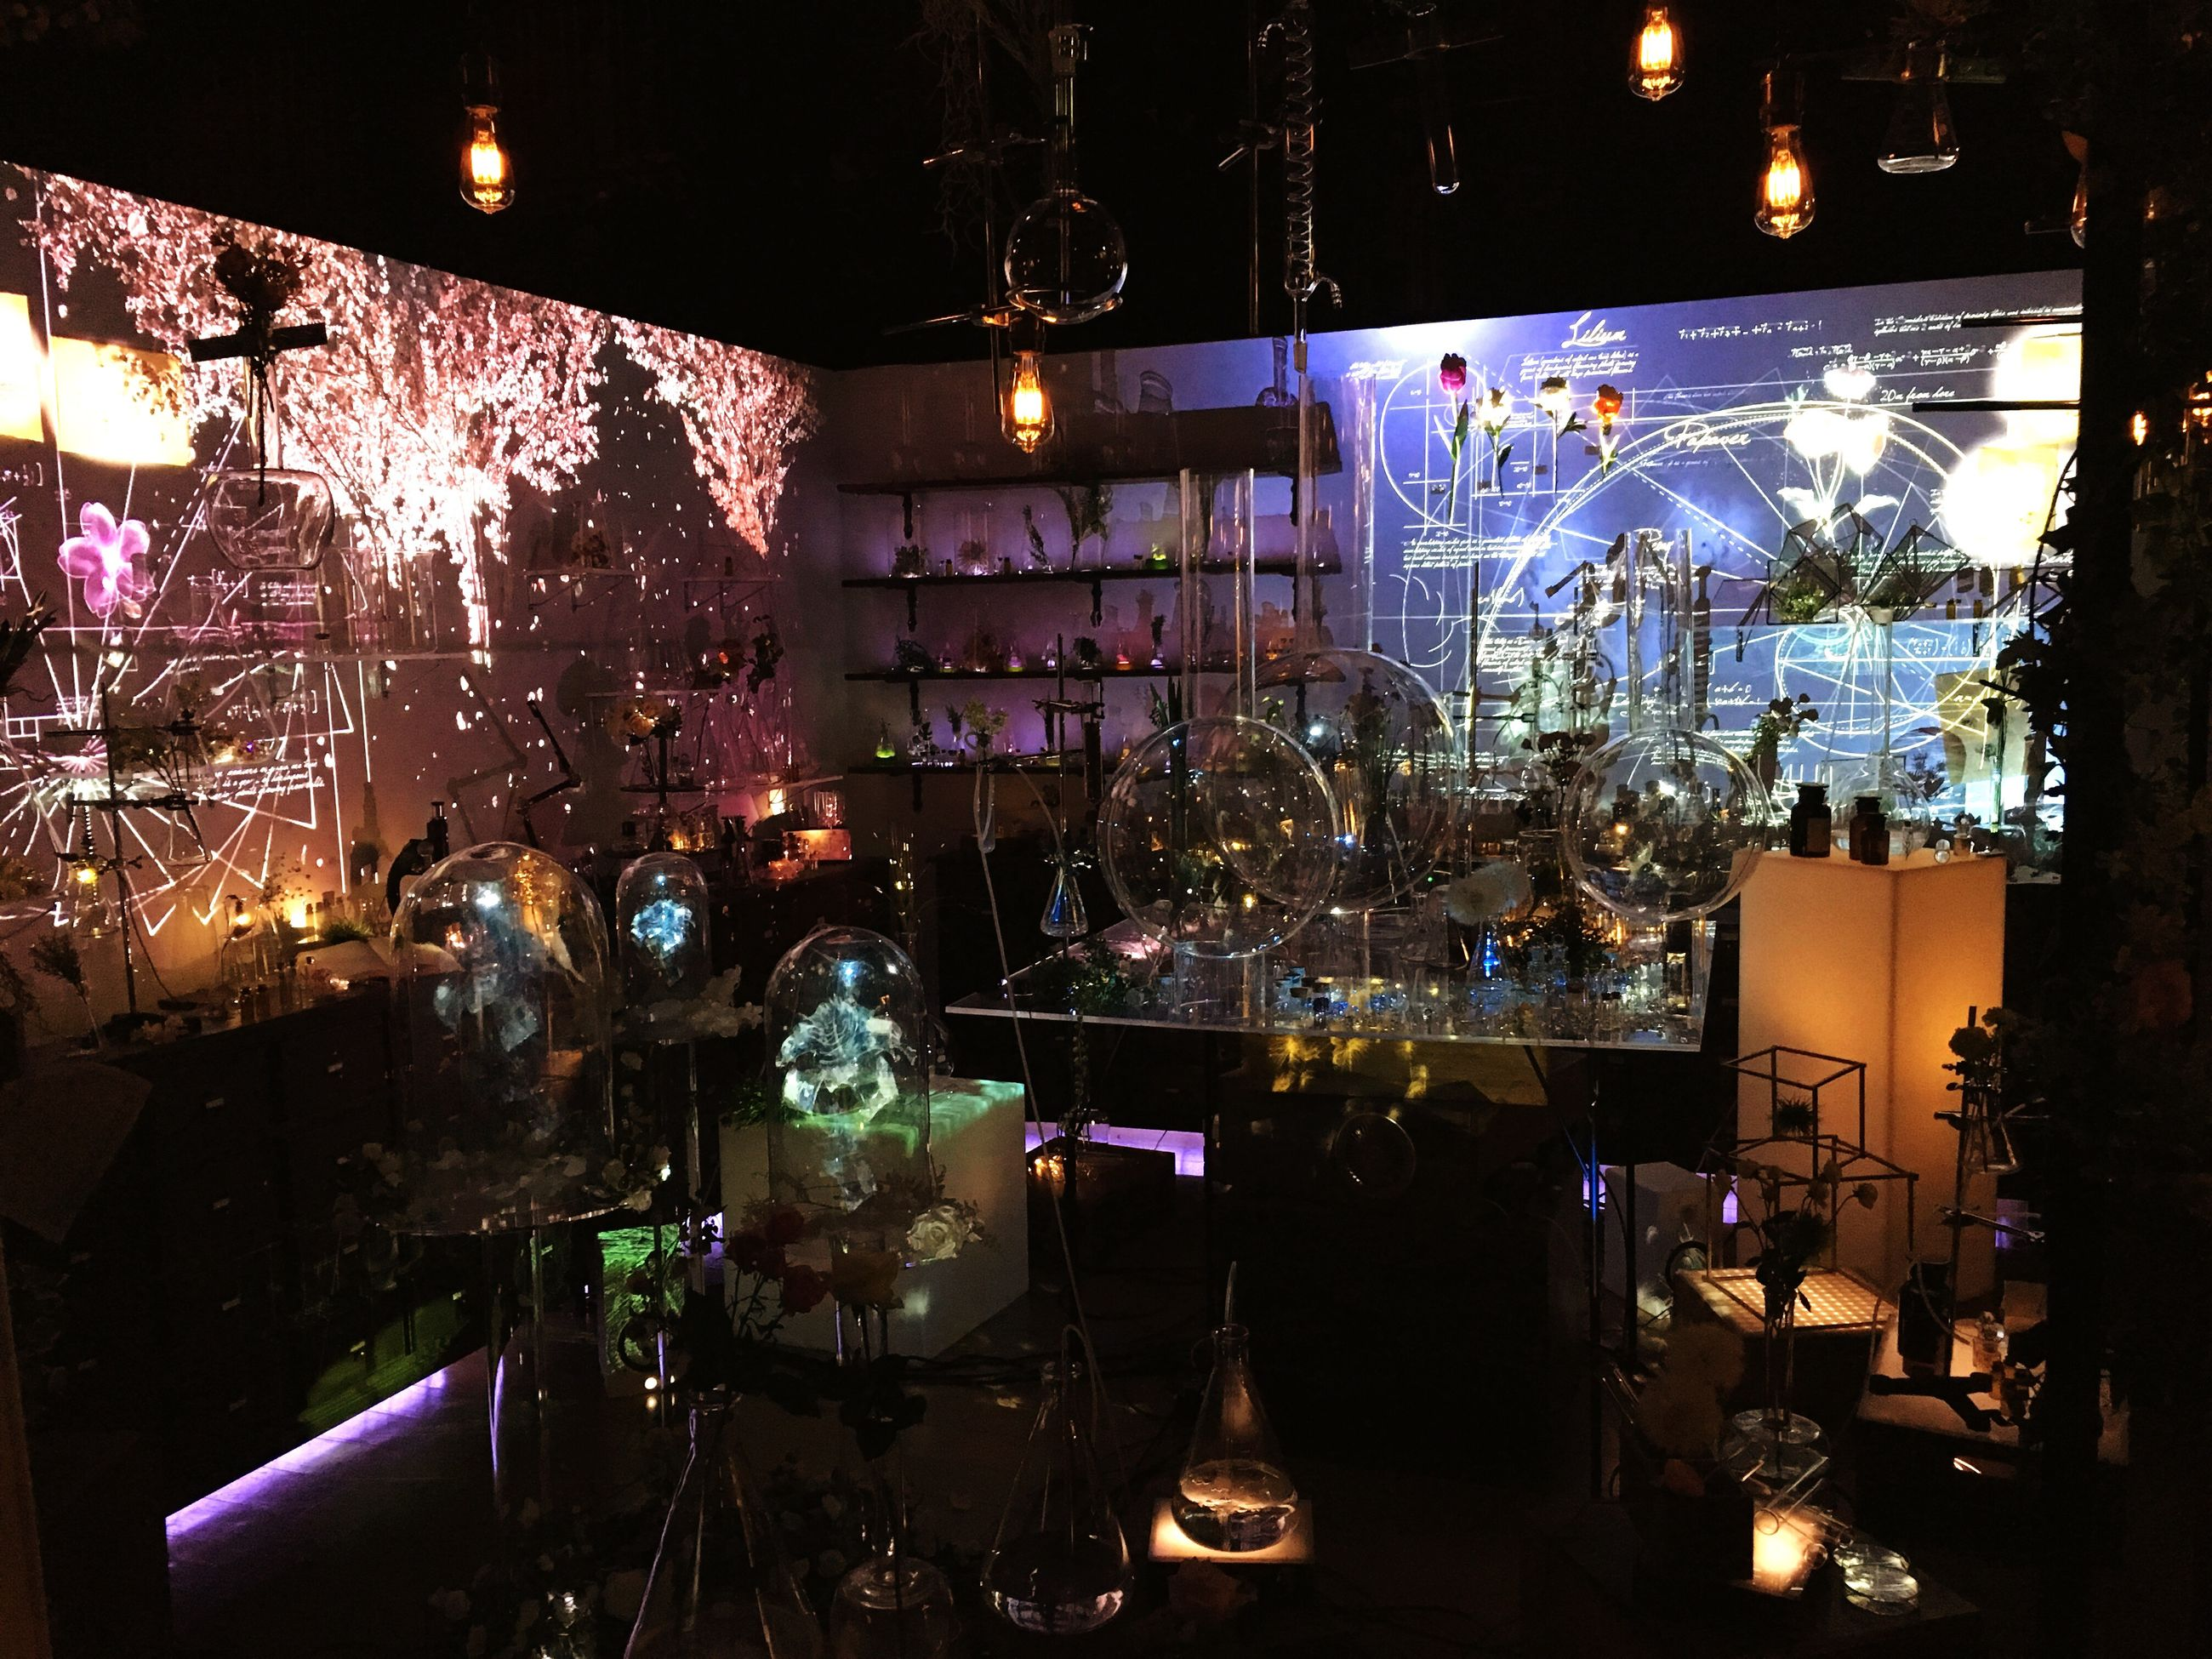 illuminated, night, indoors, lighting equipment, light - natural phenomenon, decoration, table, restaurant, built structure, hanging, celebration, electric light, electricity, no people, dark, architecture, glass - material, large group of objects, variation, chair